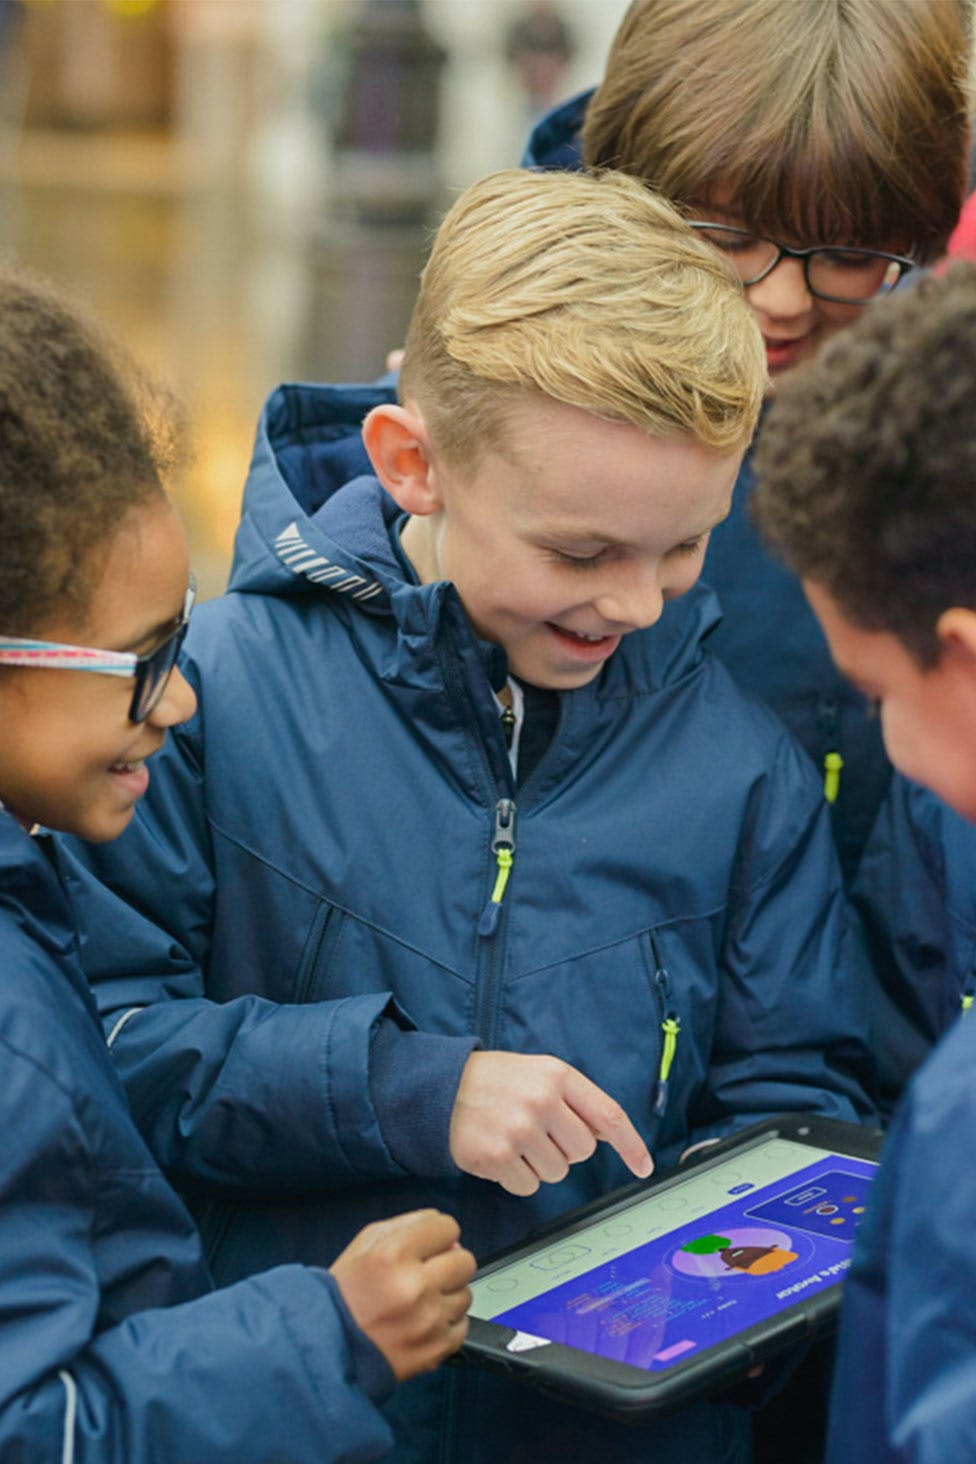 Four young people gathered around an iPad, creating an avatar.